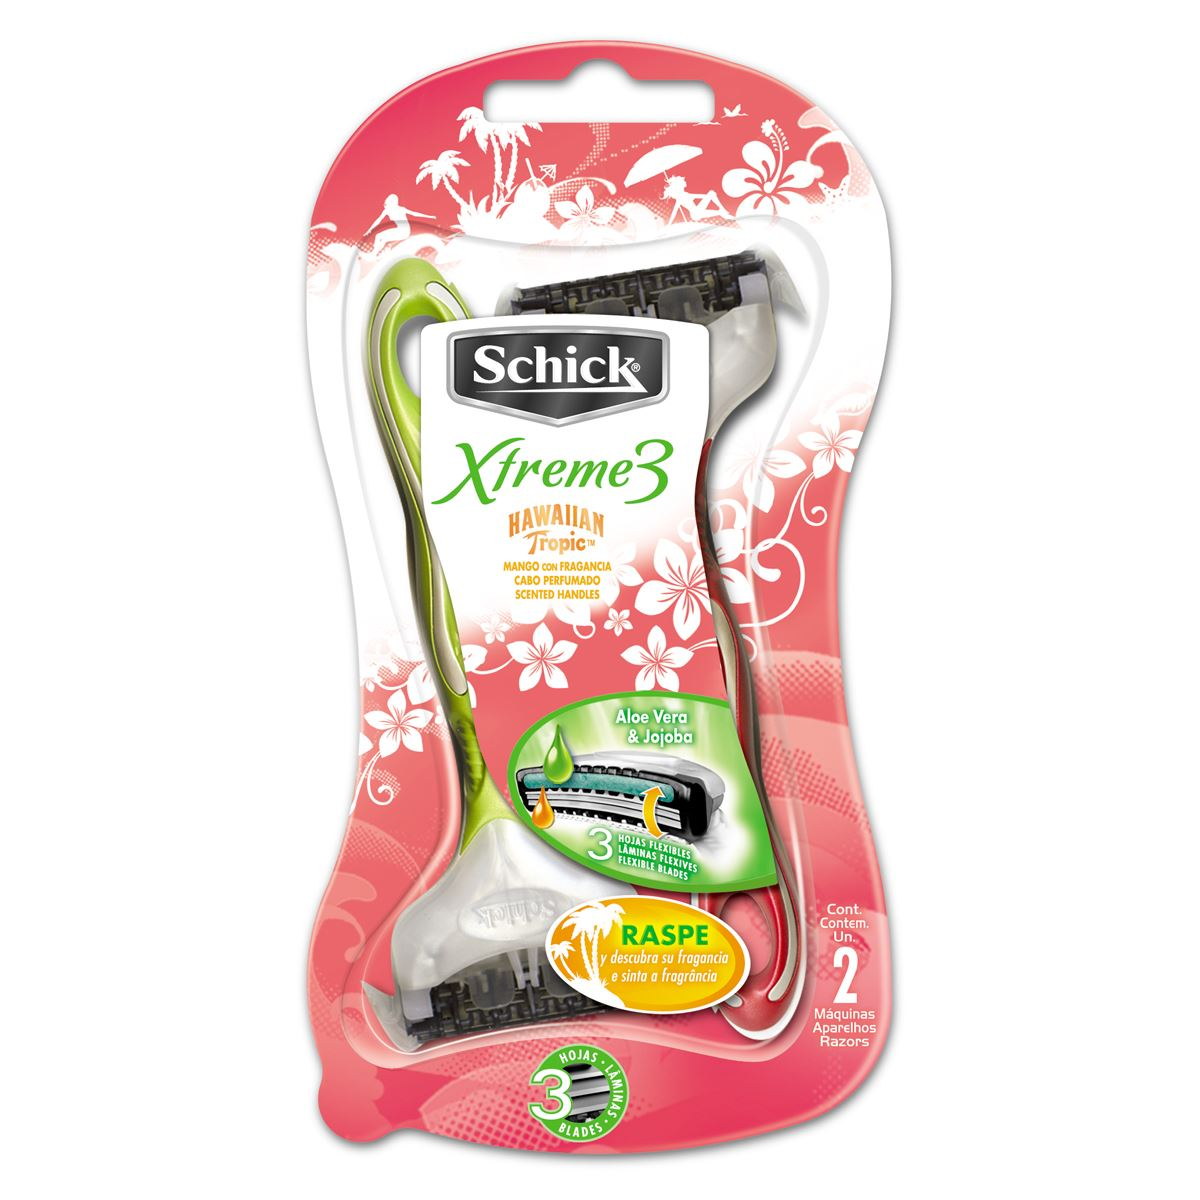 Schick xtreme3 bp2 hawaiian tropic  - Sanborns